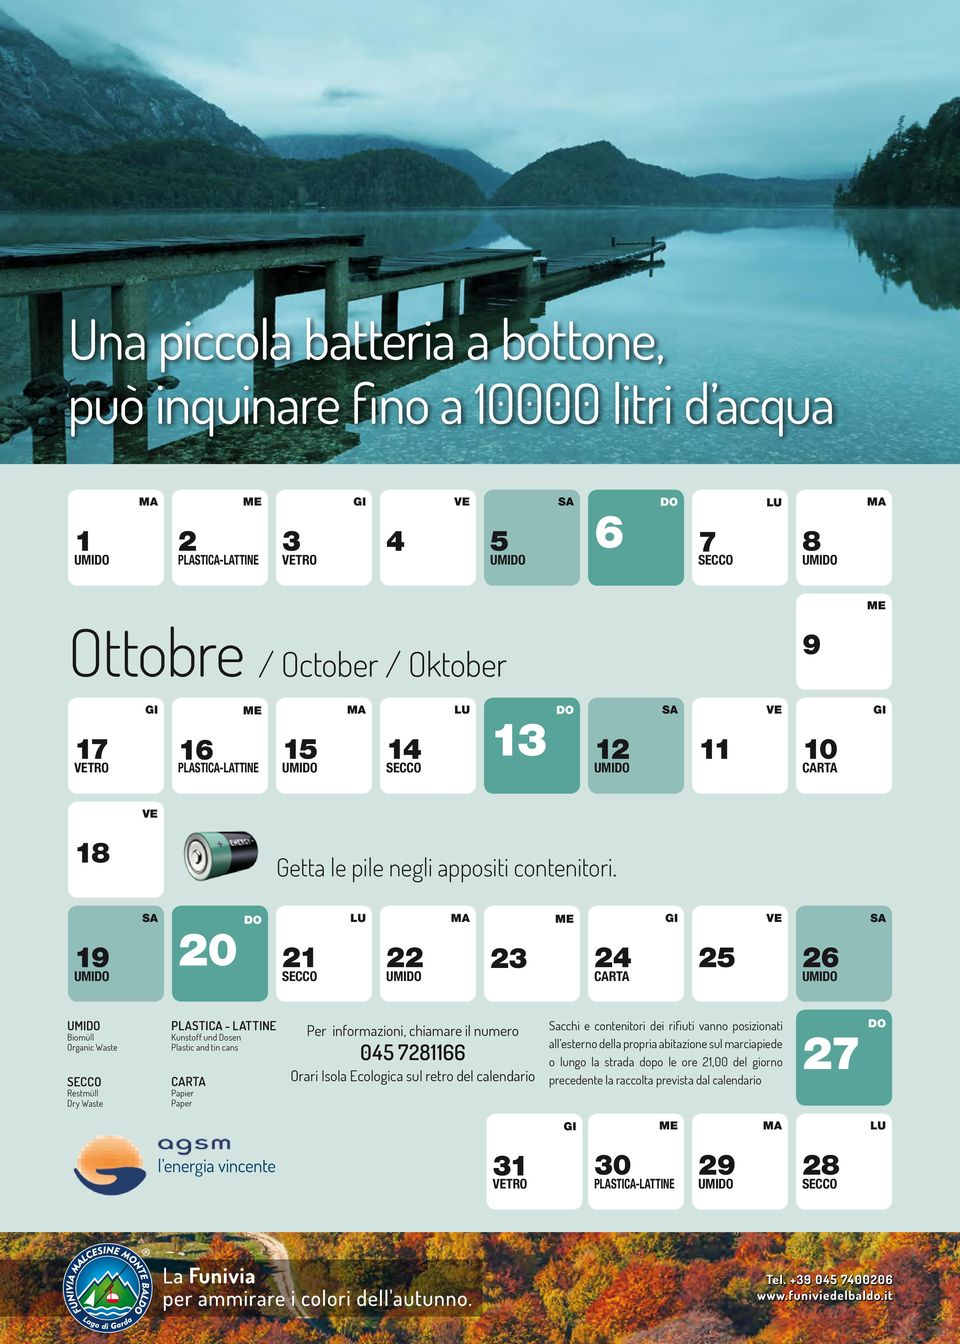 Ottobre / October / Oktober TRO 0 Getta